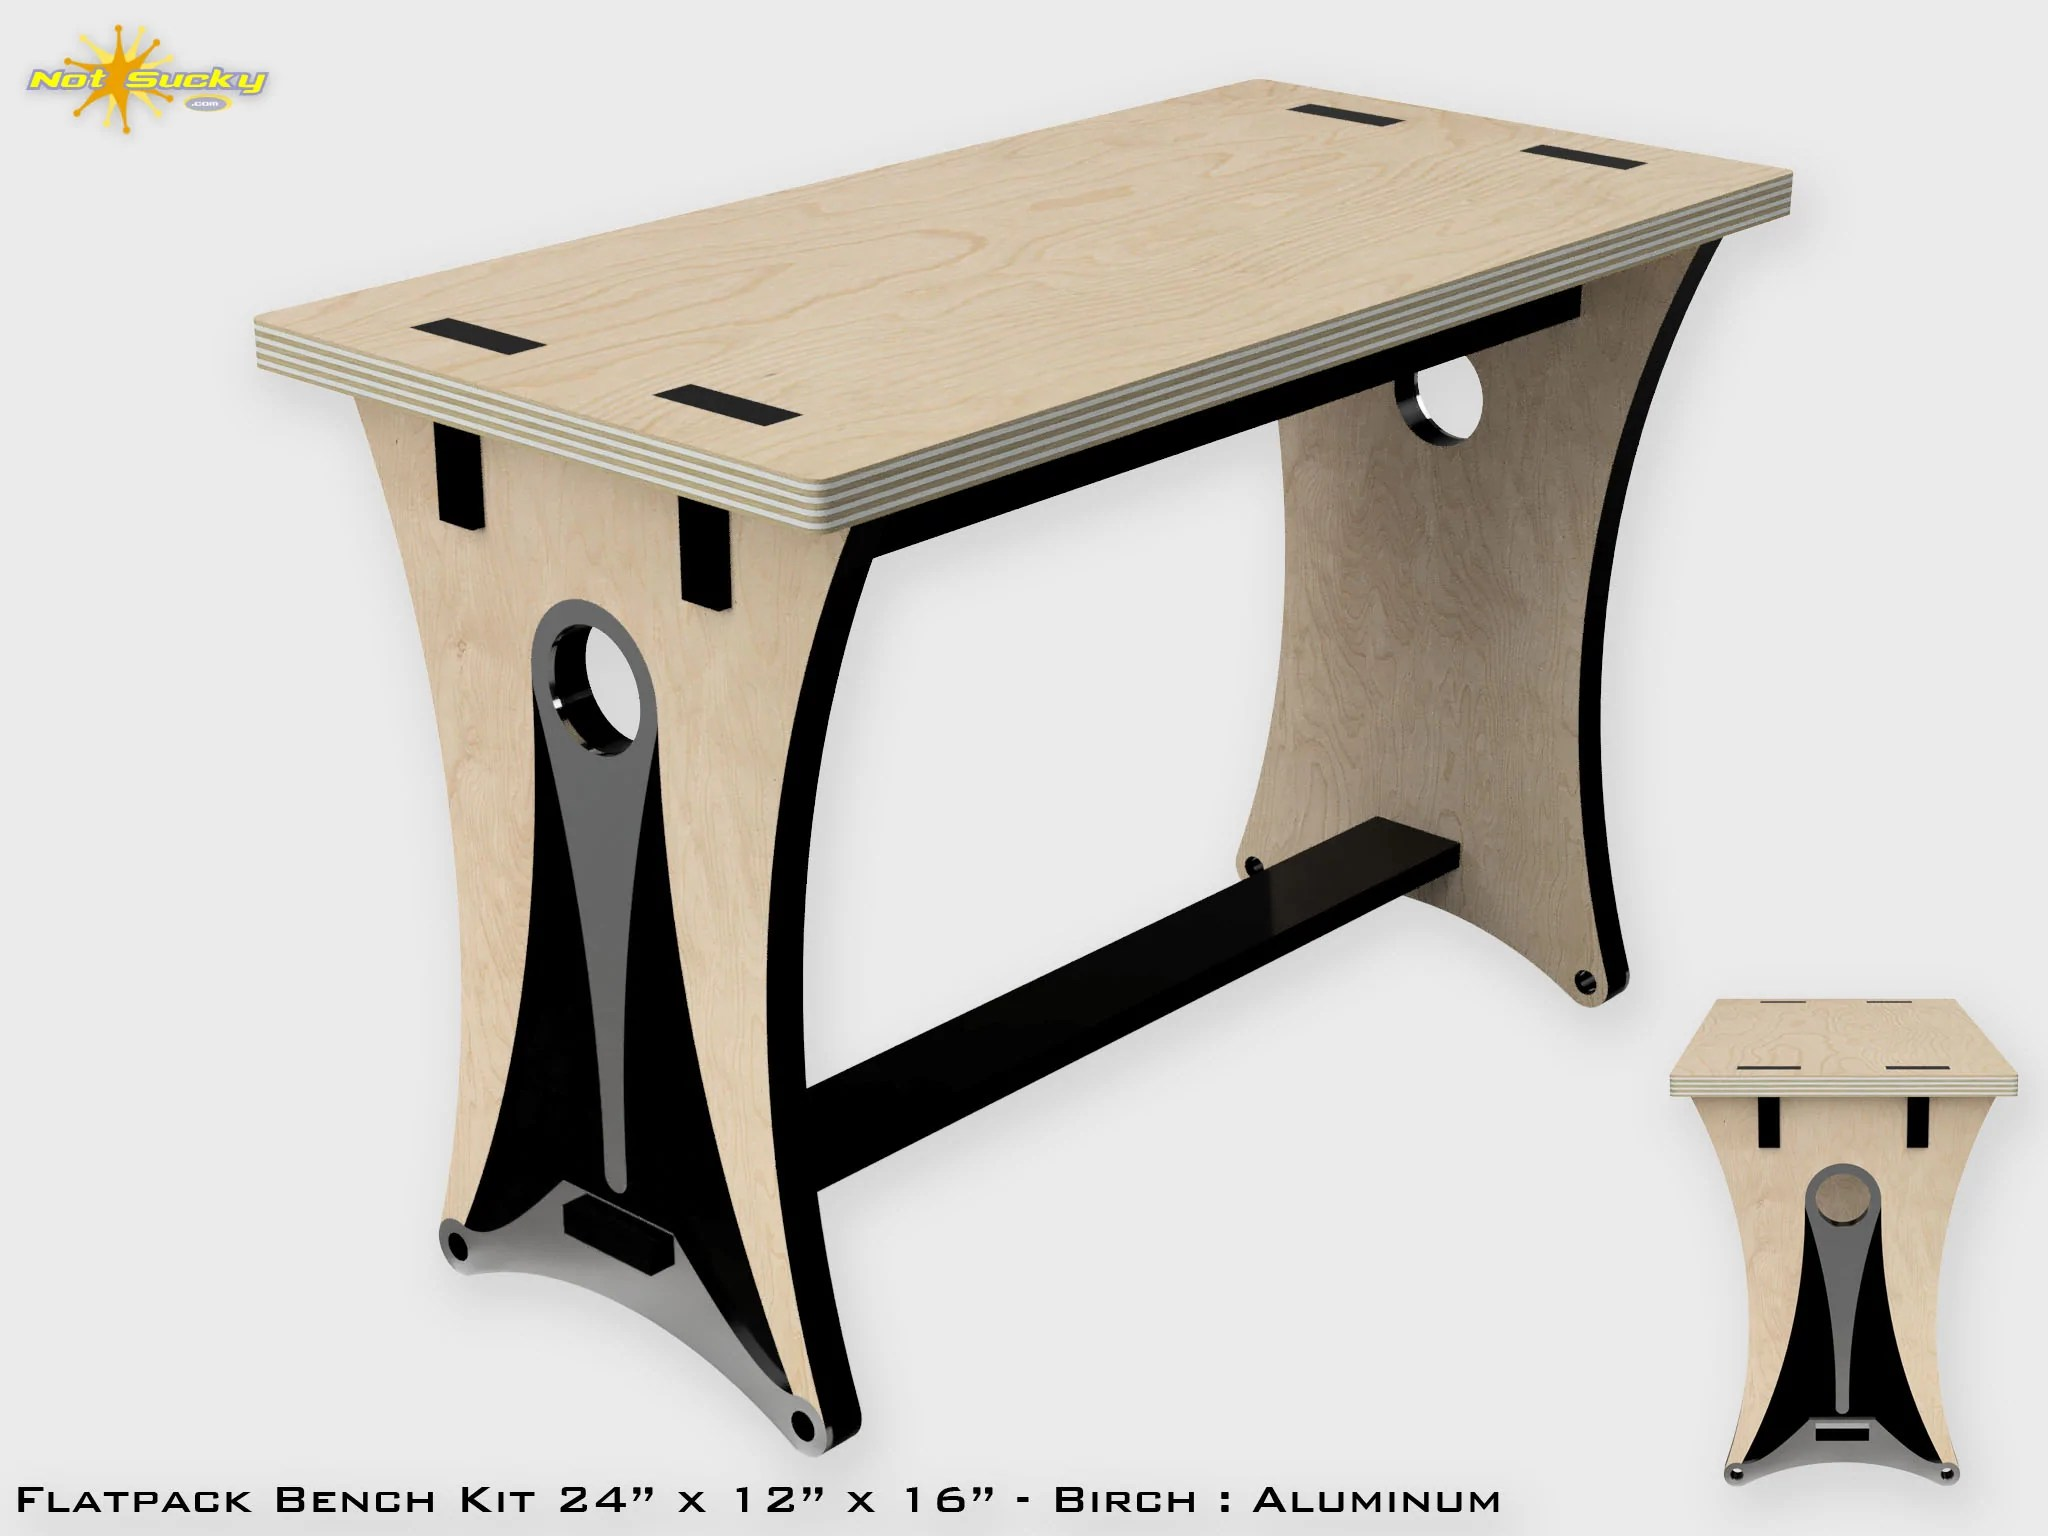 Flat Pack Outdoor Kitchen Flat Pack Bench Kits Diy Simple Modern Notsucky